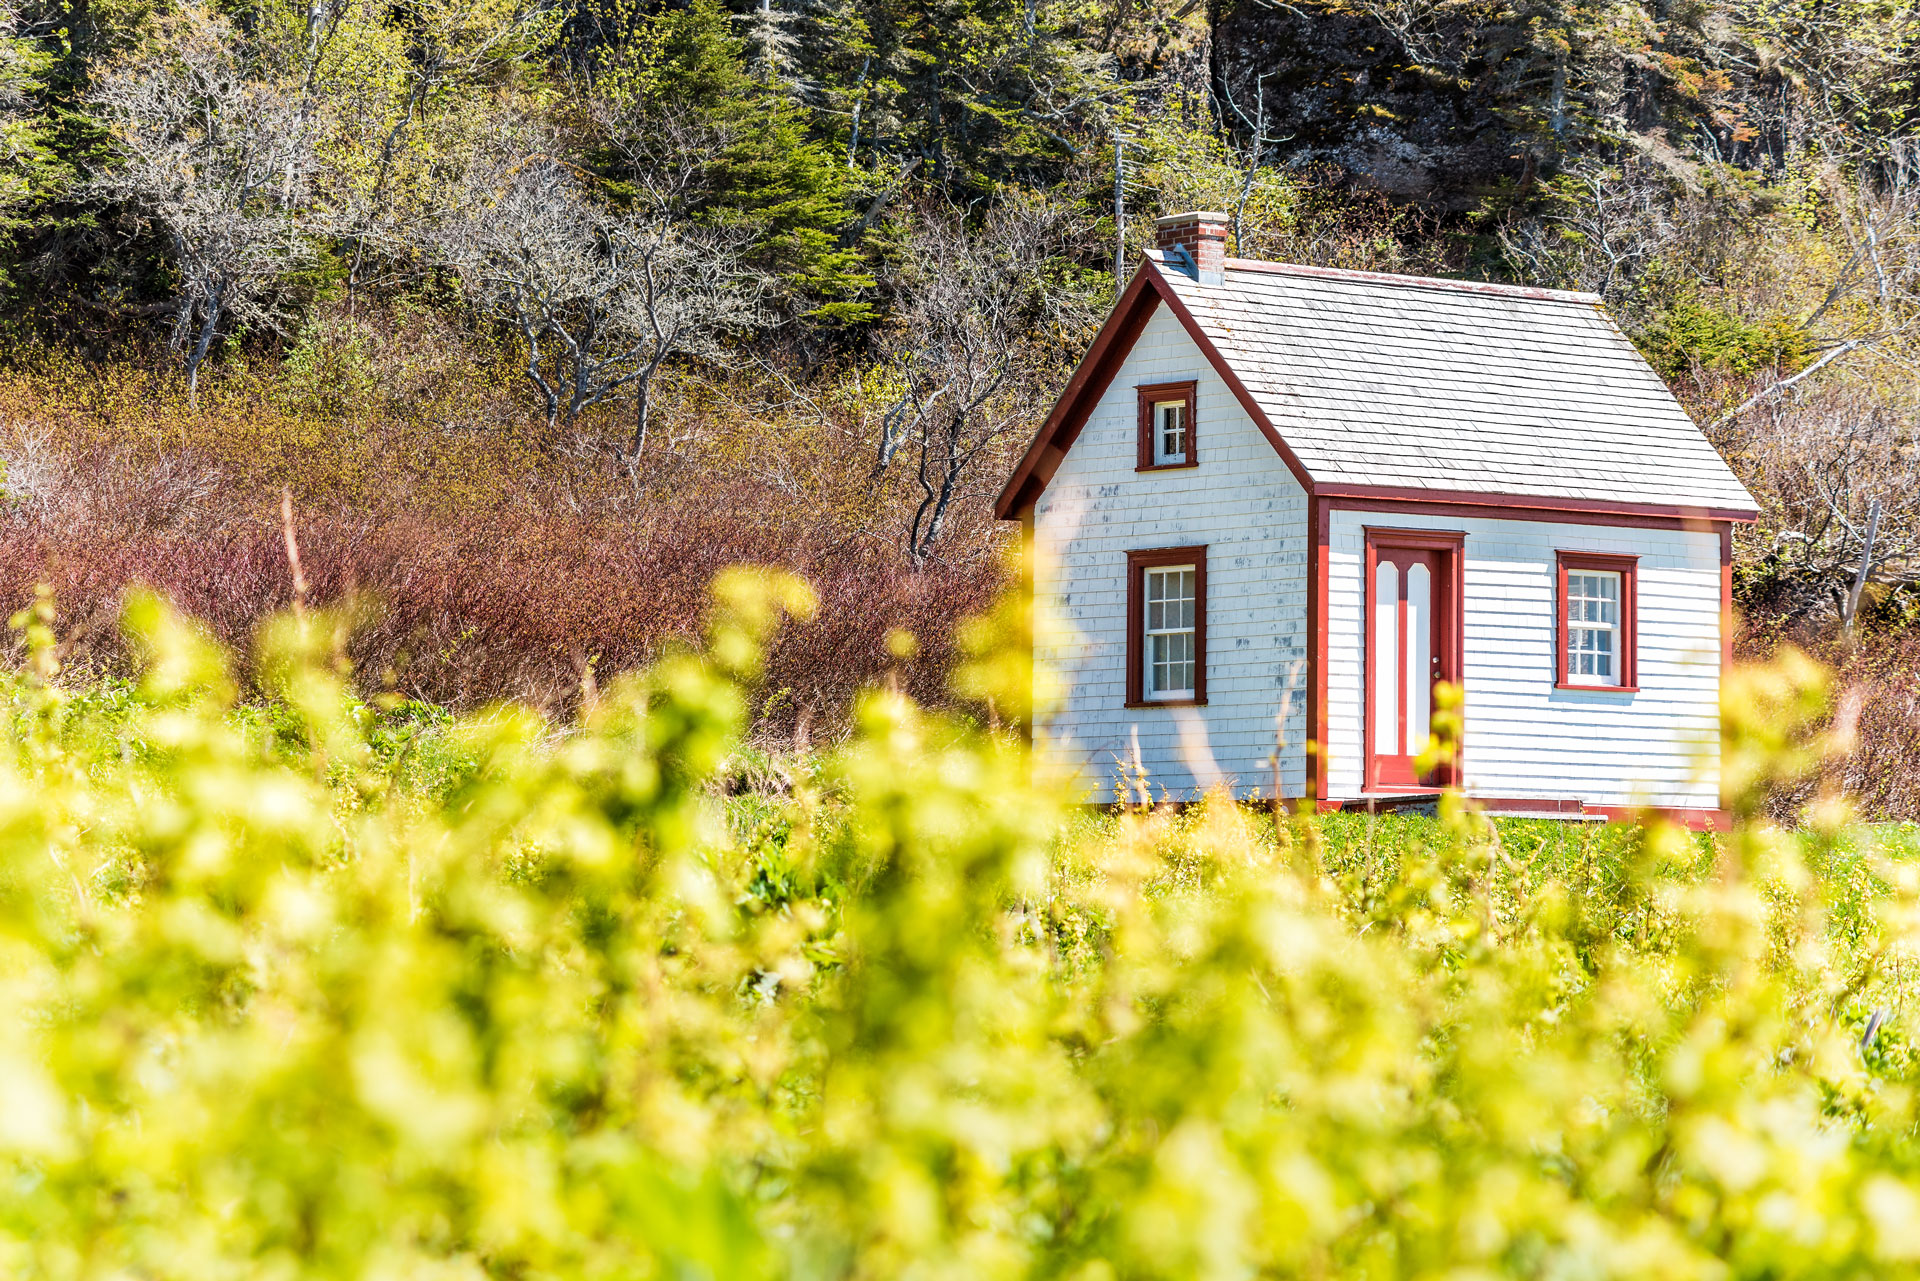 How to Downsize Your Home Plus Free Downsizing Checklist